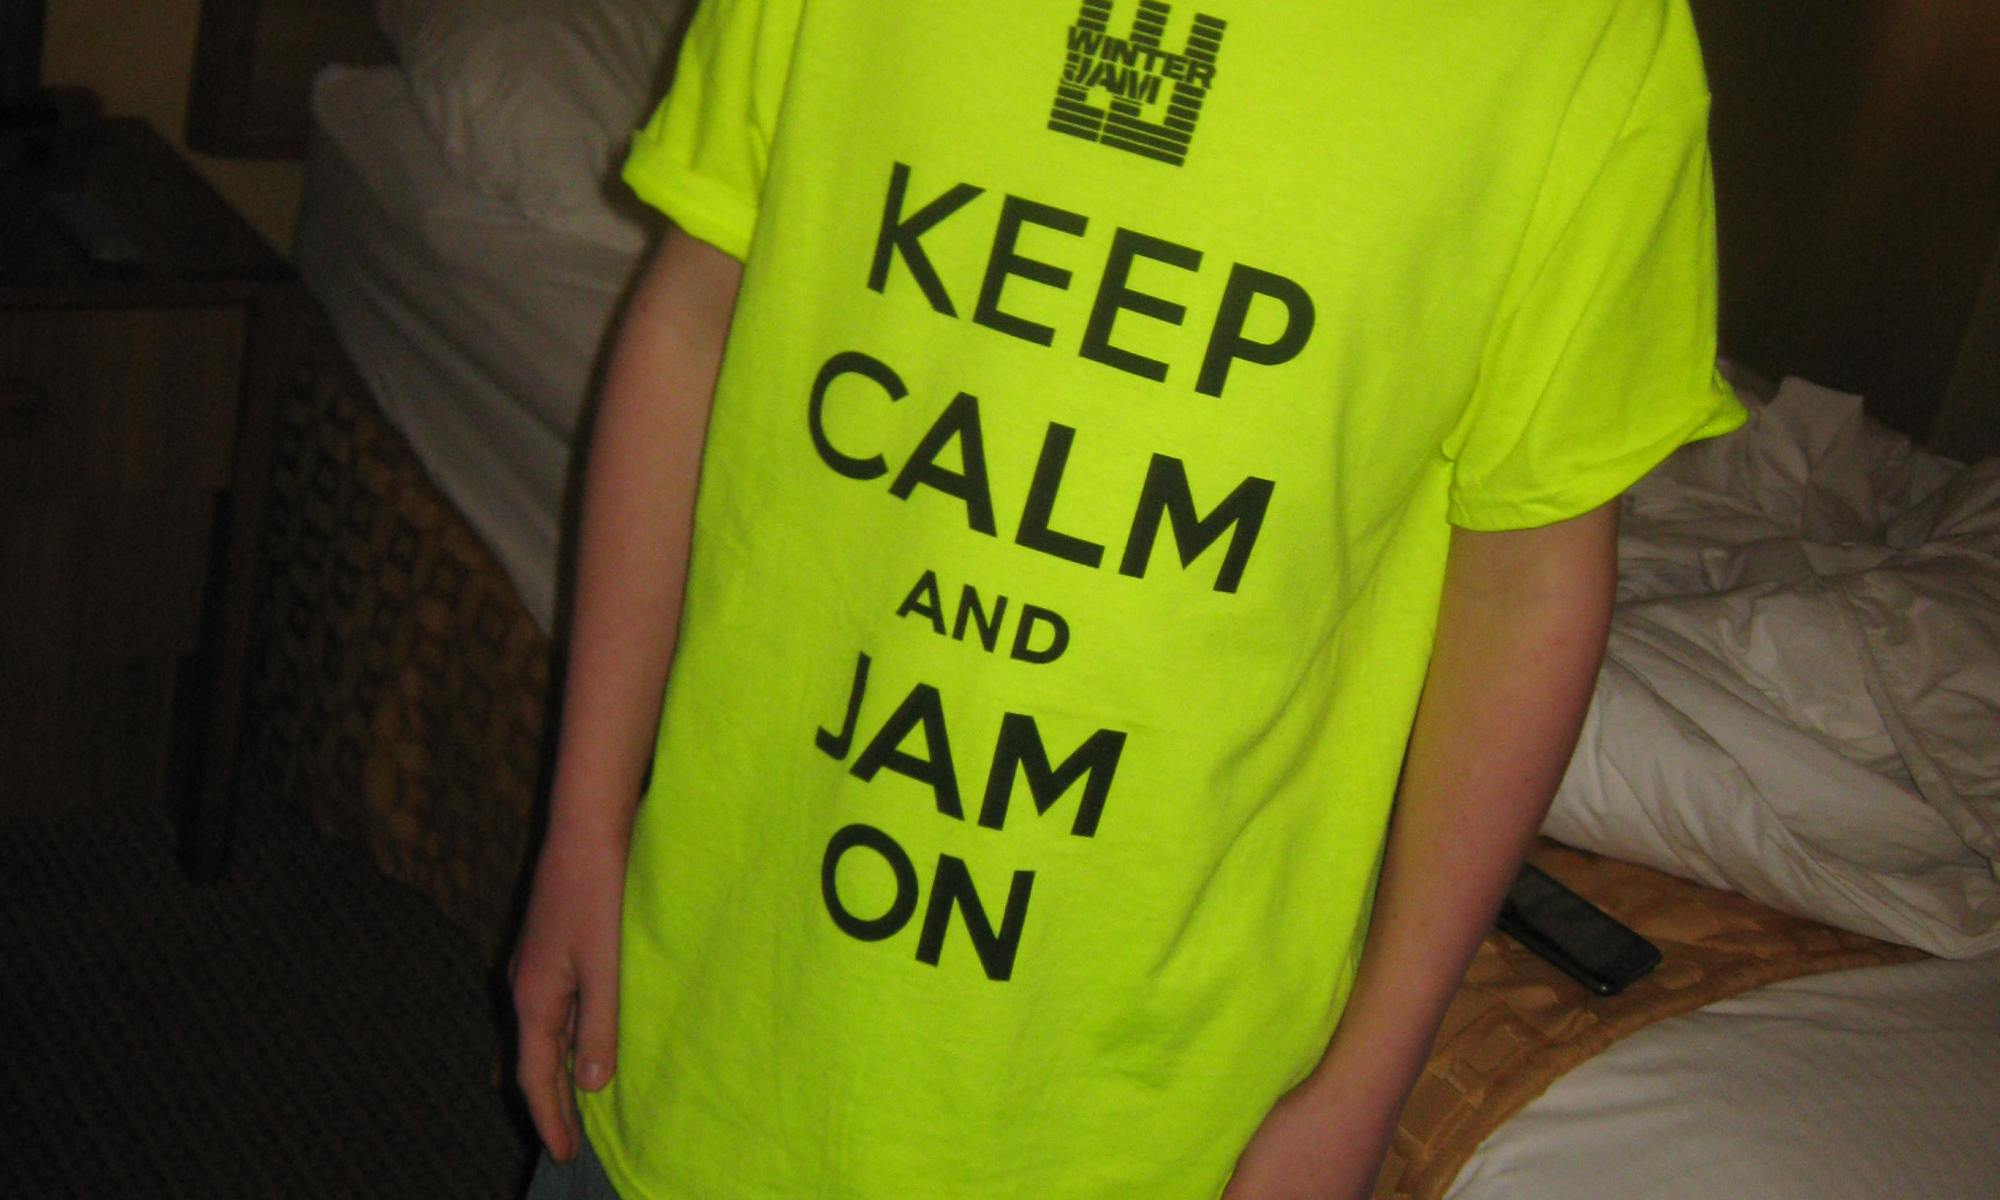 Keep Calm and Jam On Winter Jam 2013